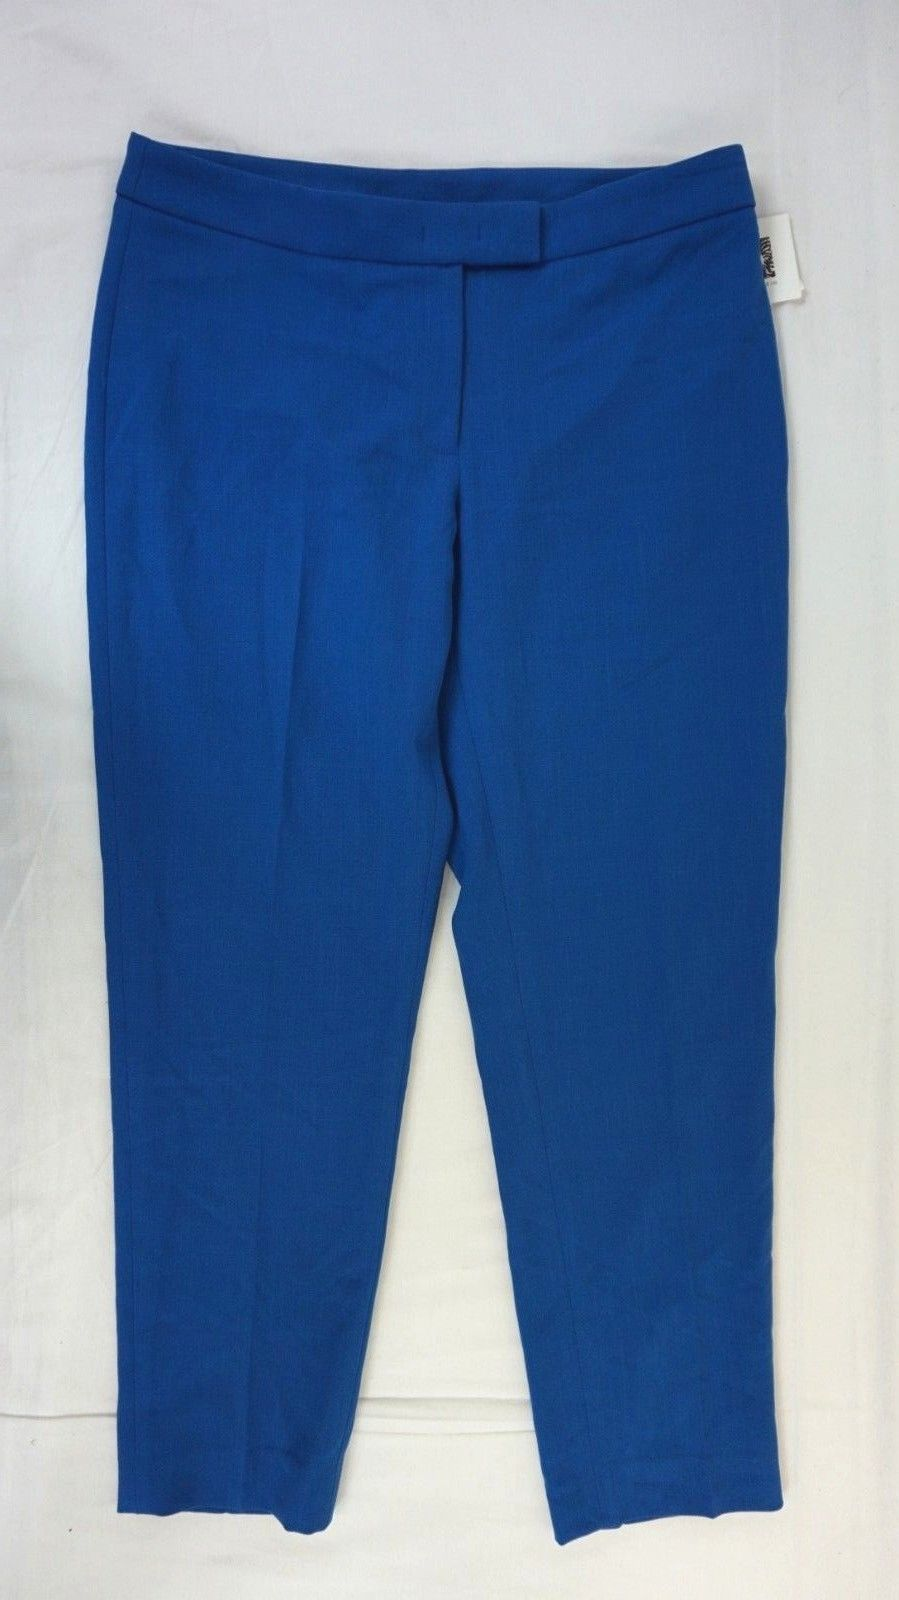 NWT ANNE KLEIN Women's Bluebell No Pocket Straight Leg Dress Pants 10 x 28